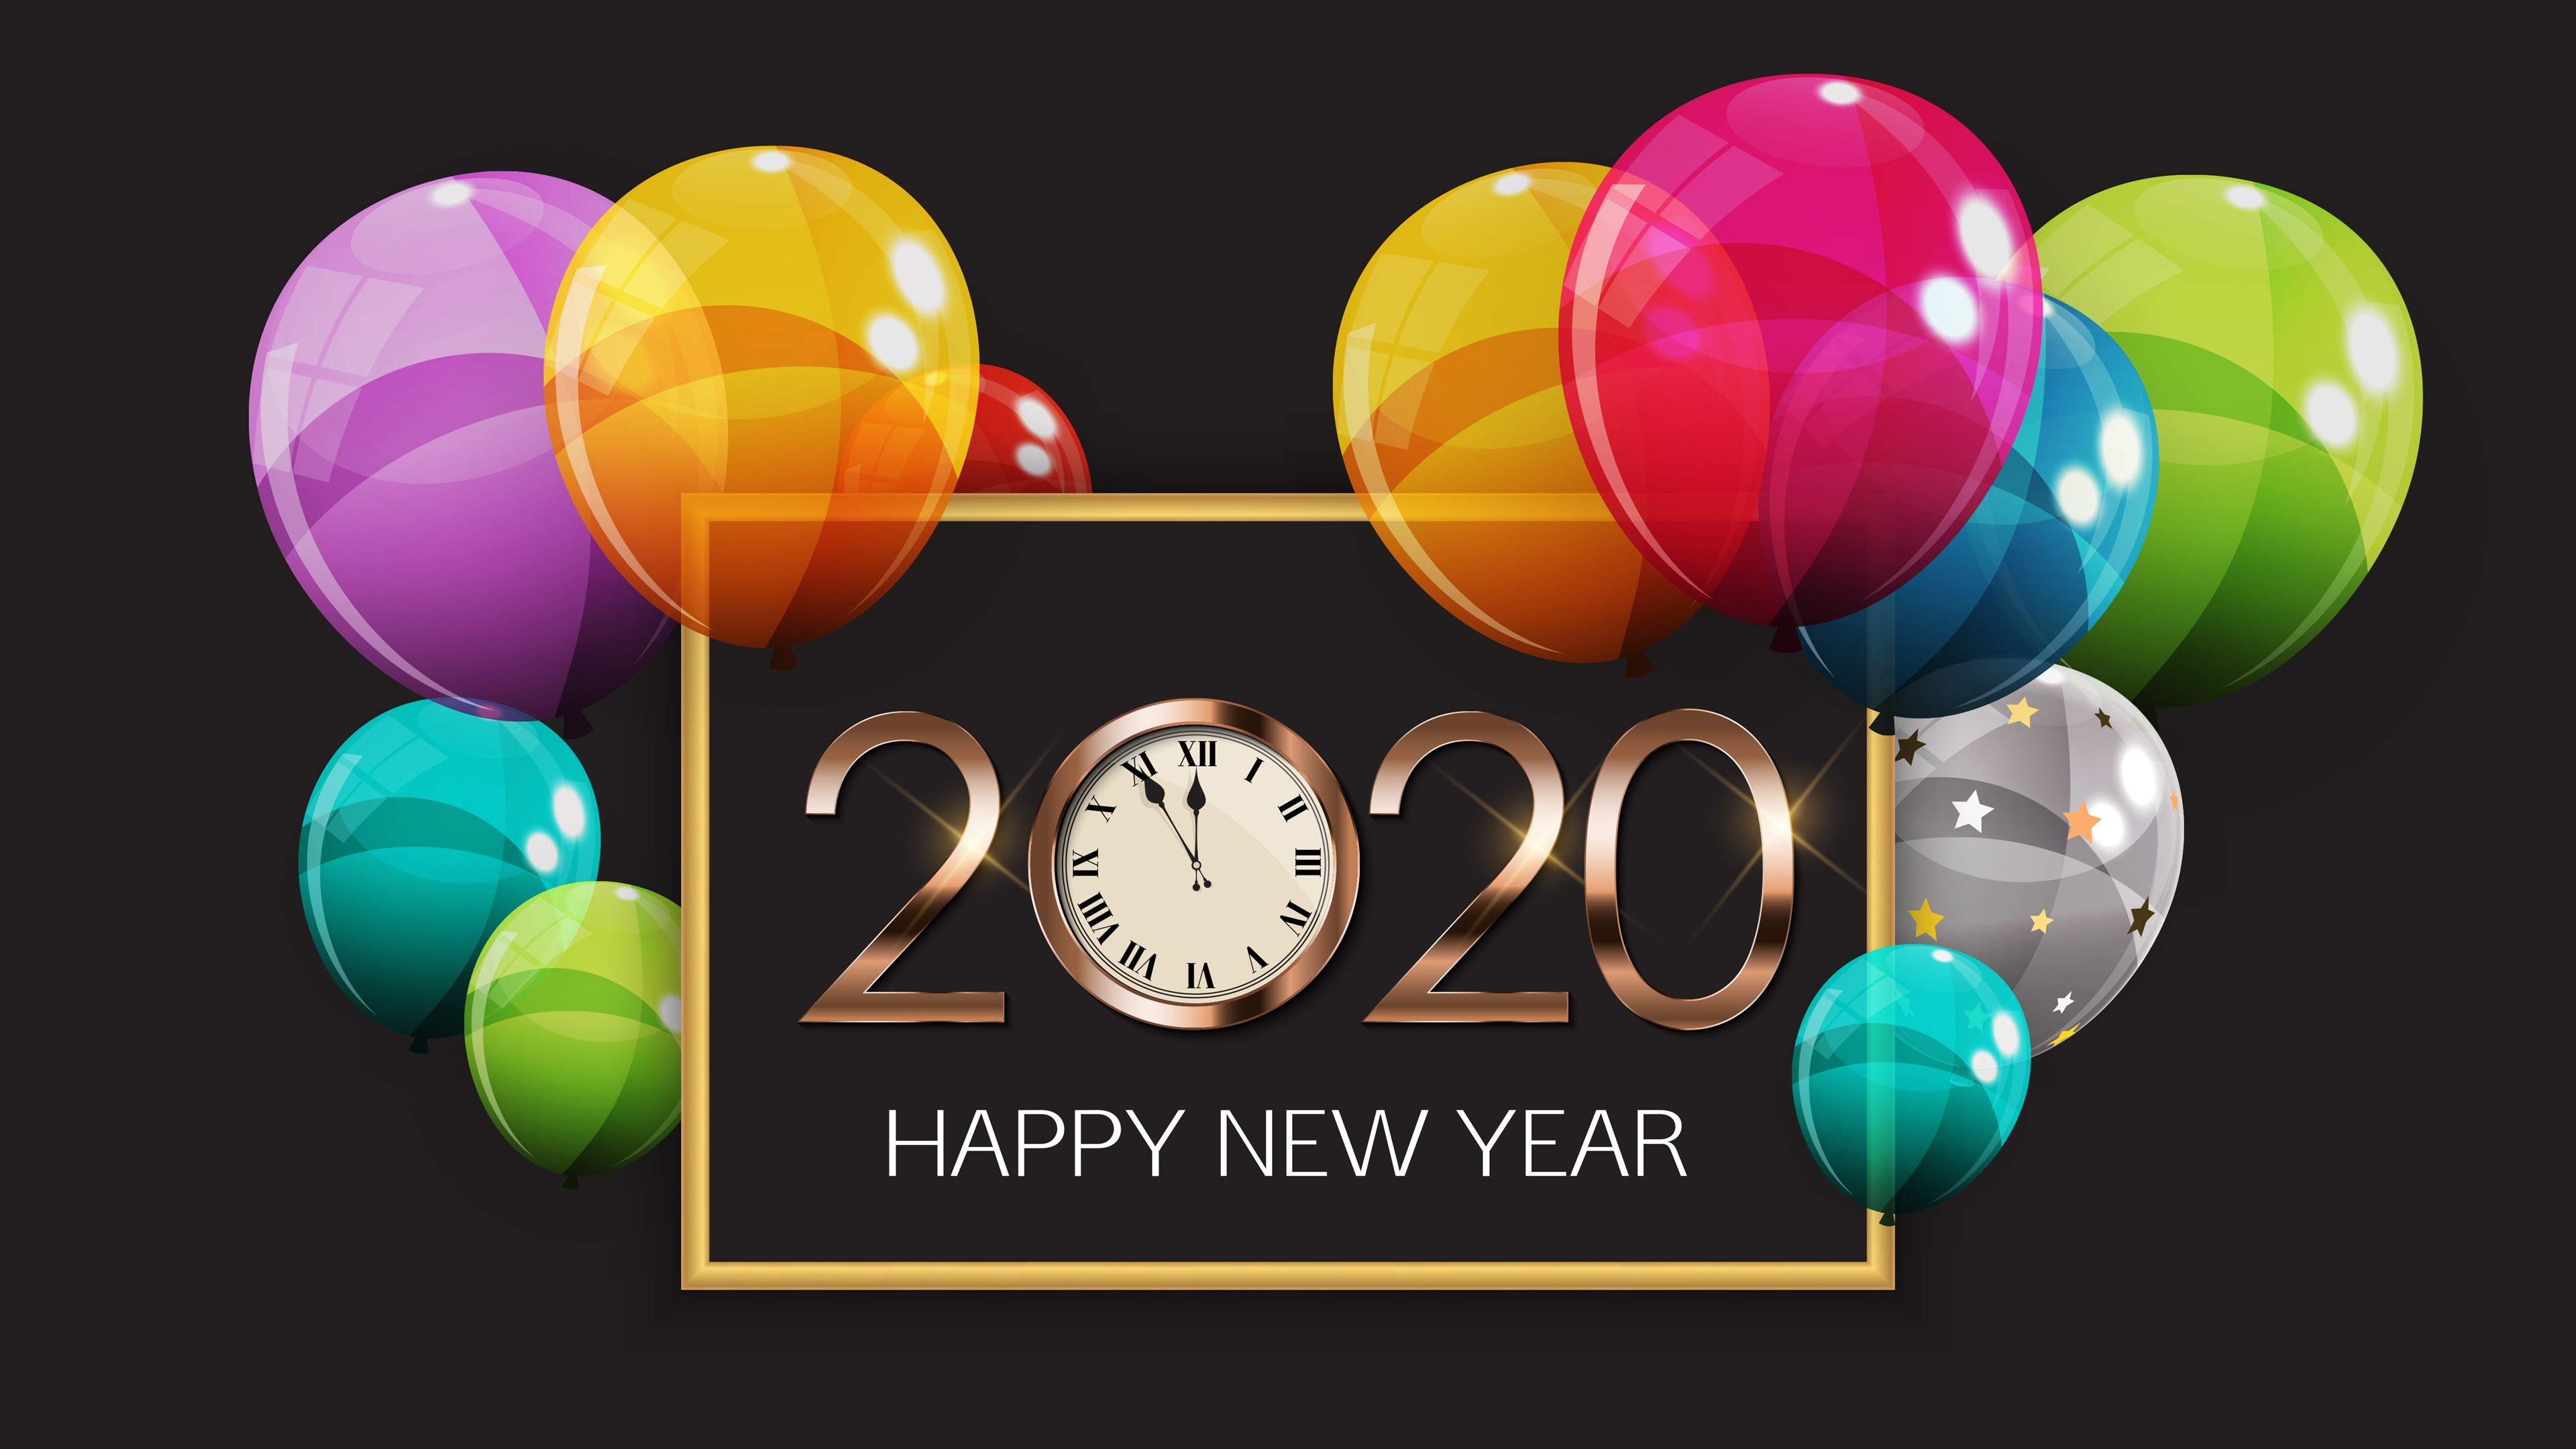 Happy New Year 2020 Balloons Clock 4K Wallpaper 6991   Baltana 3840x2160